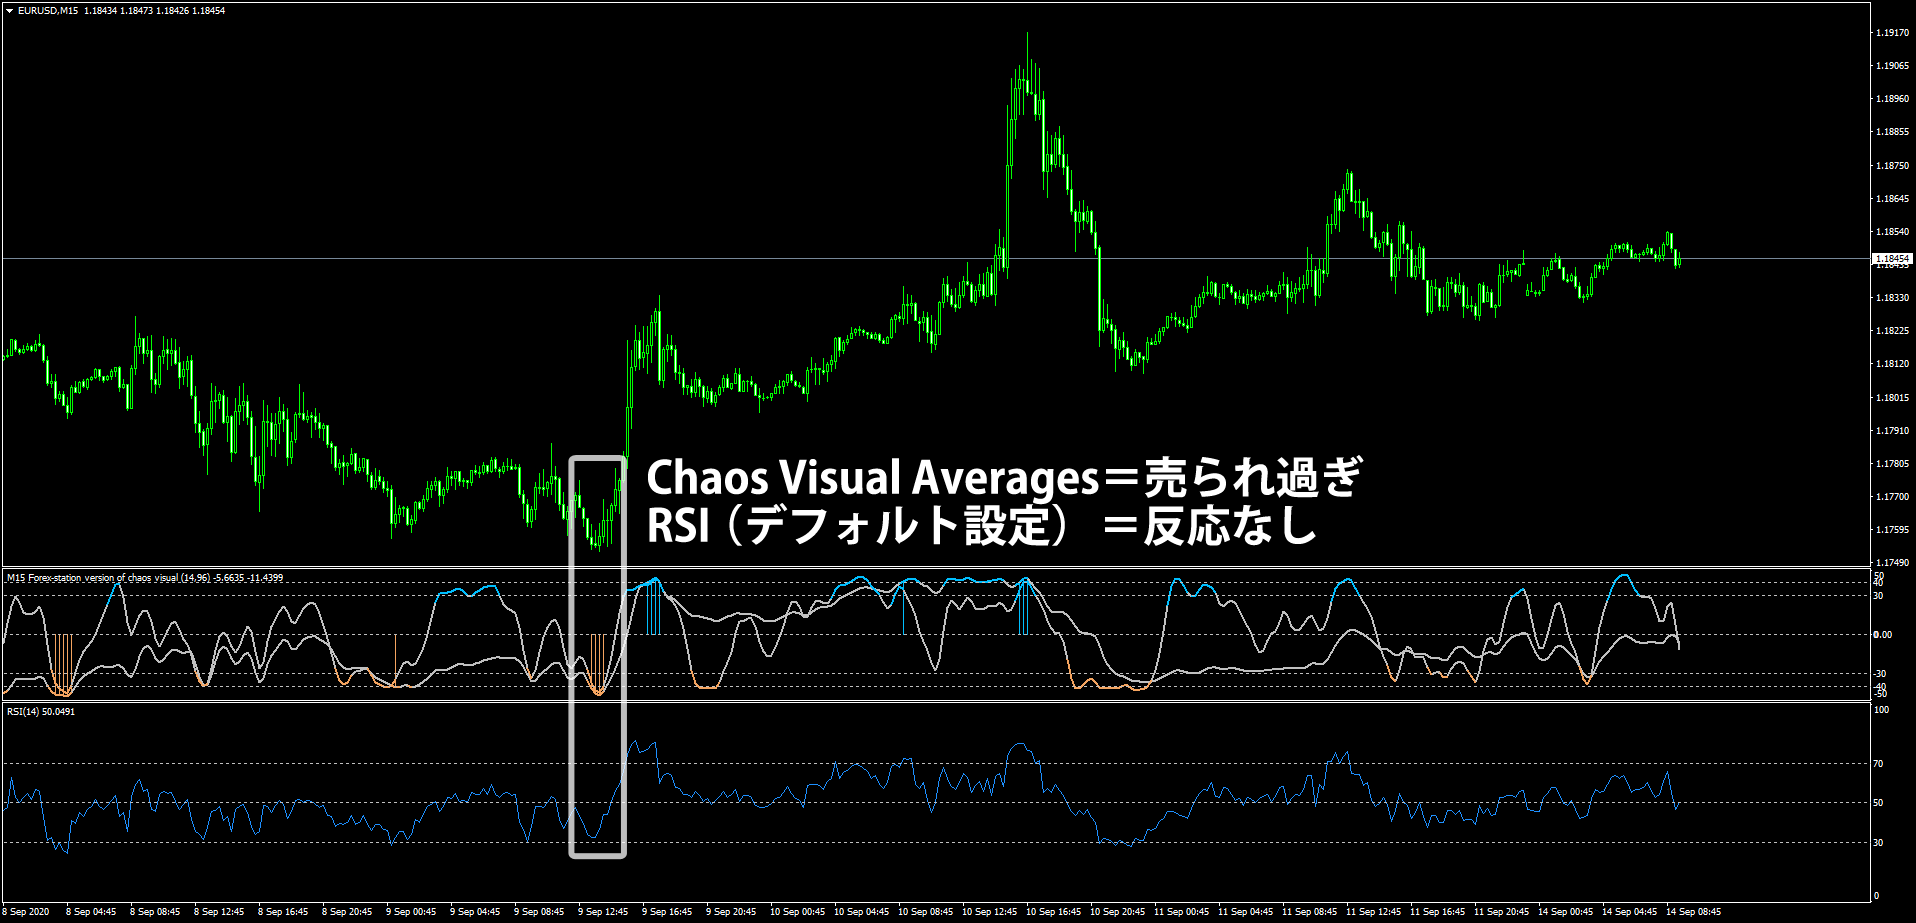 RSIとChaos Visual Averagesの比較